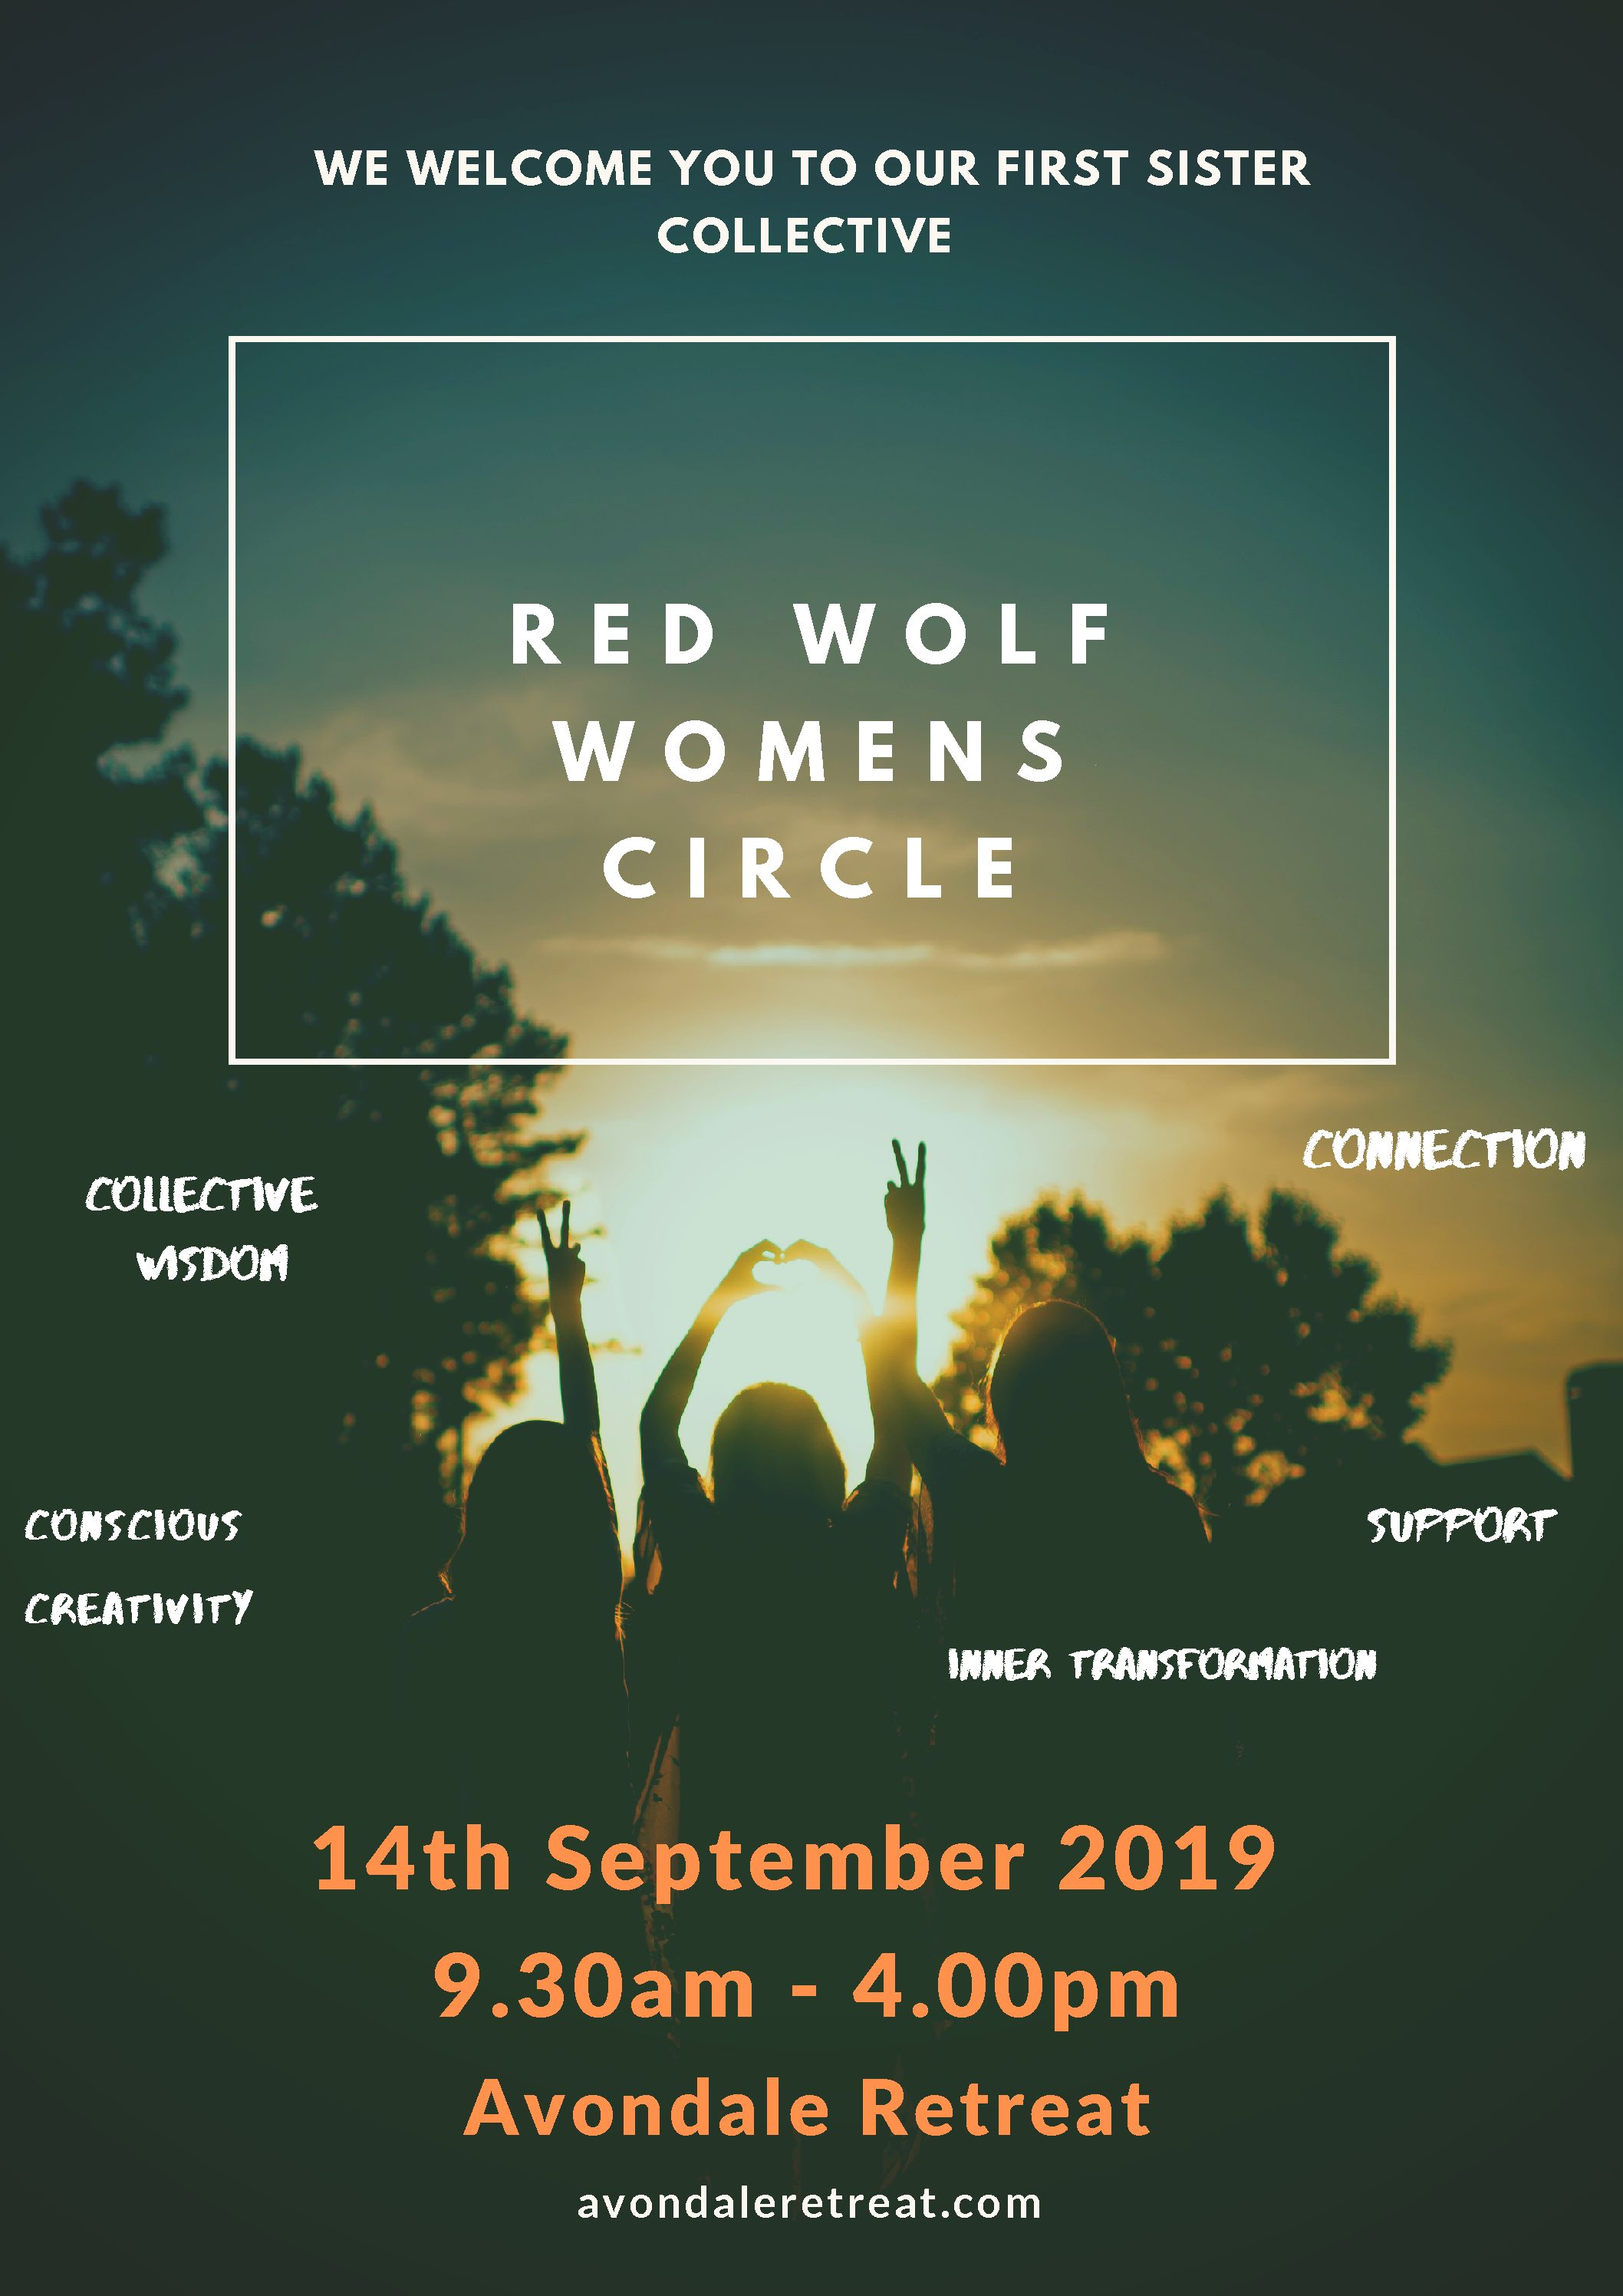 Red Wolf Womens Circle - first gathering Saturday 14th September